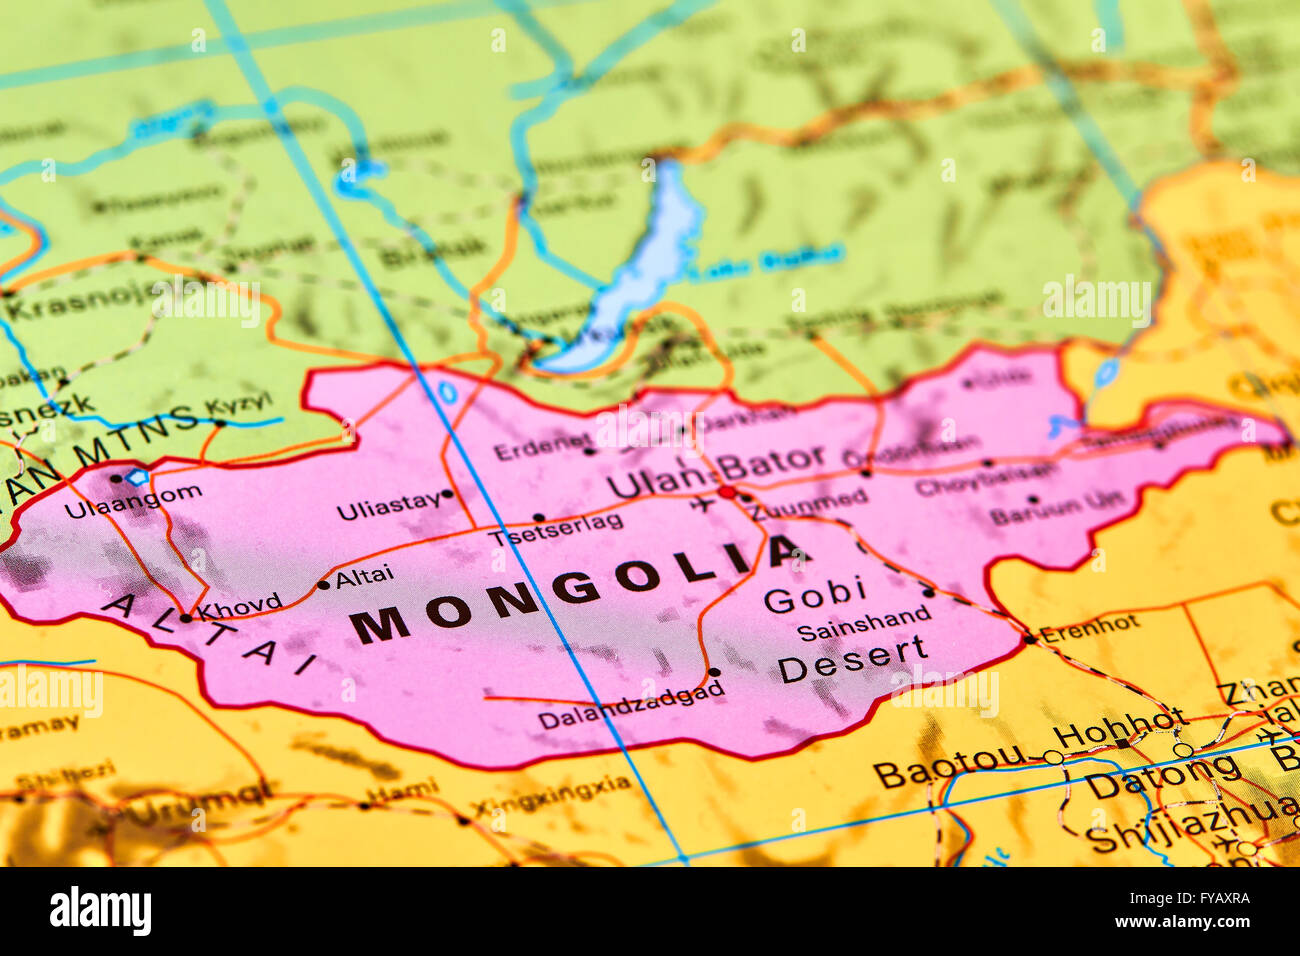 Mongolia, Country in Asia on the World Map - Stock Image